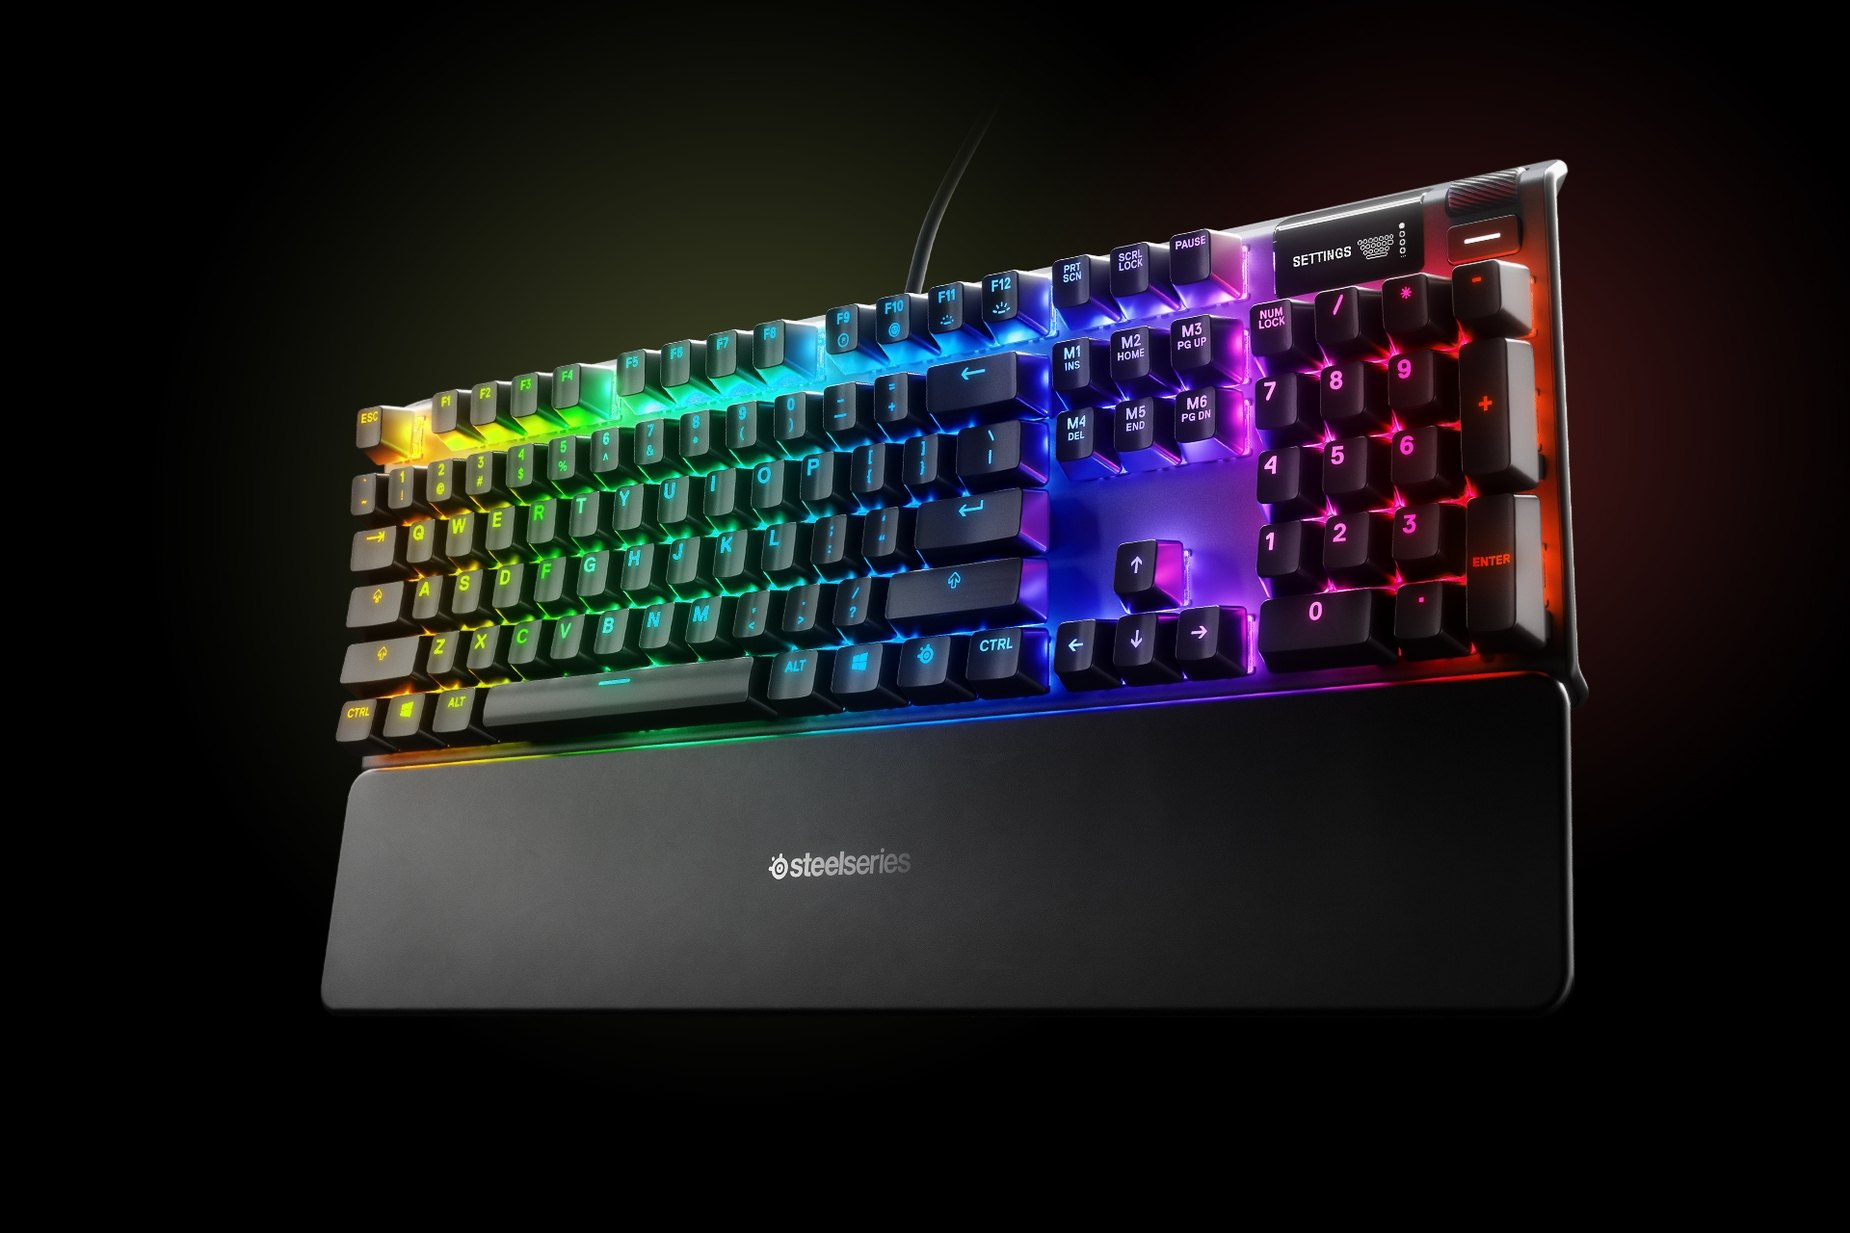 Taiwanese - Apex 7 (Blue Switch) gaming keyboard with the illumination lit up on dark background, also shows the OLED screen and controls used to change settings and adjust audio